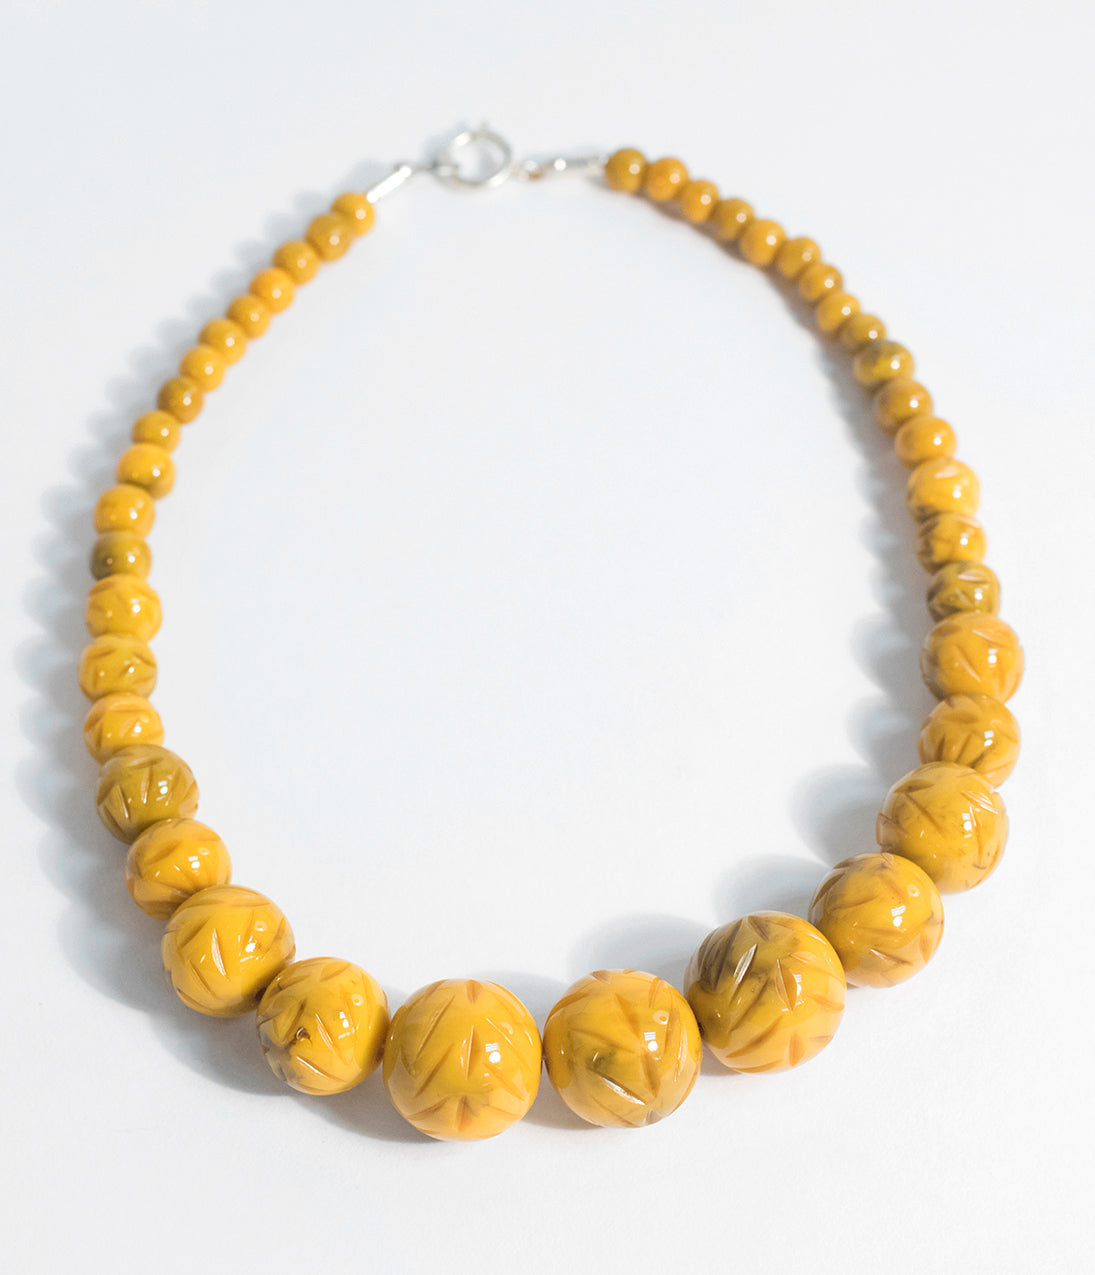 50s Jewelry: Earrings, Necklace, Brooch, Bracelet Banana Yellow Carved Resin Beaded Necklace $28.00 AT vintagedancer.com